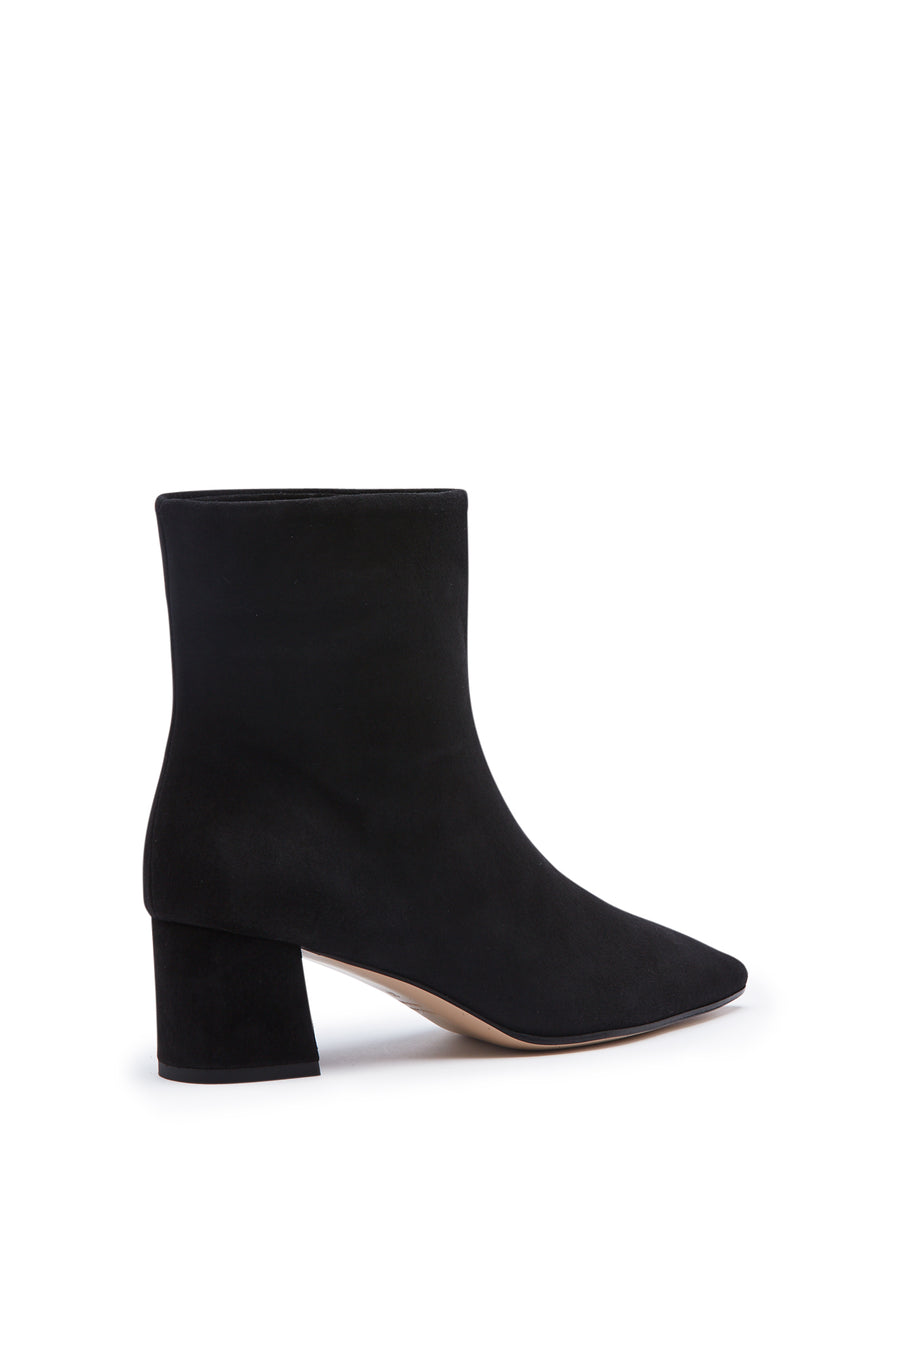 Block Heel Boot, pull on ankle, Italian calf leather. Heel height approx 6cm. Color Black Nero